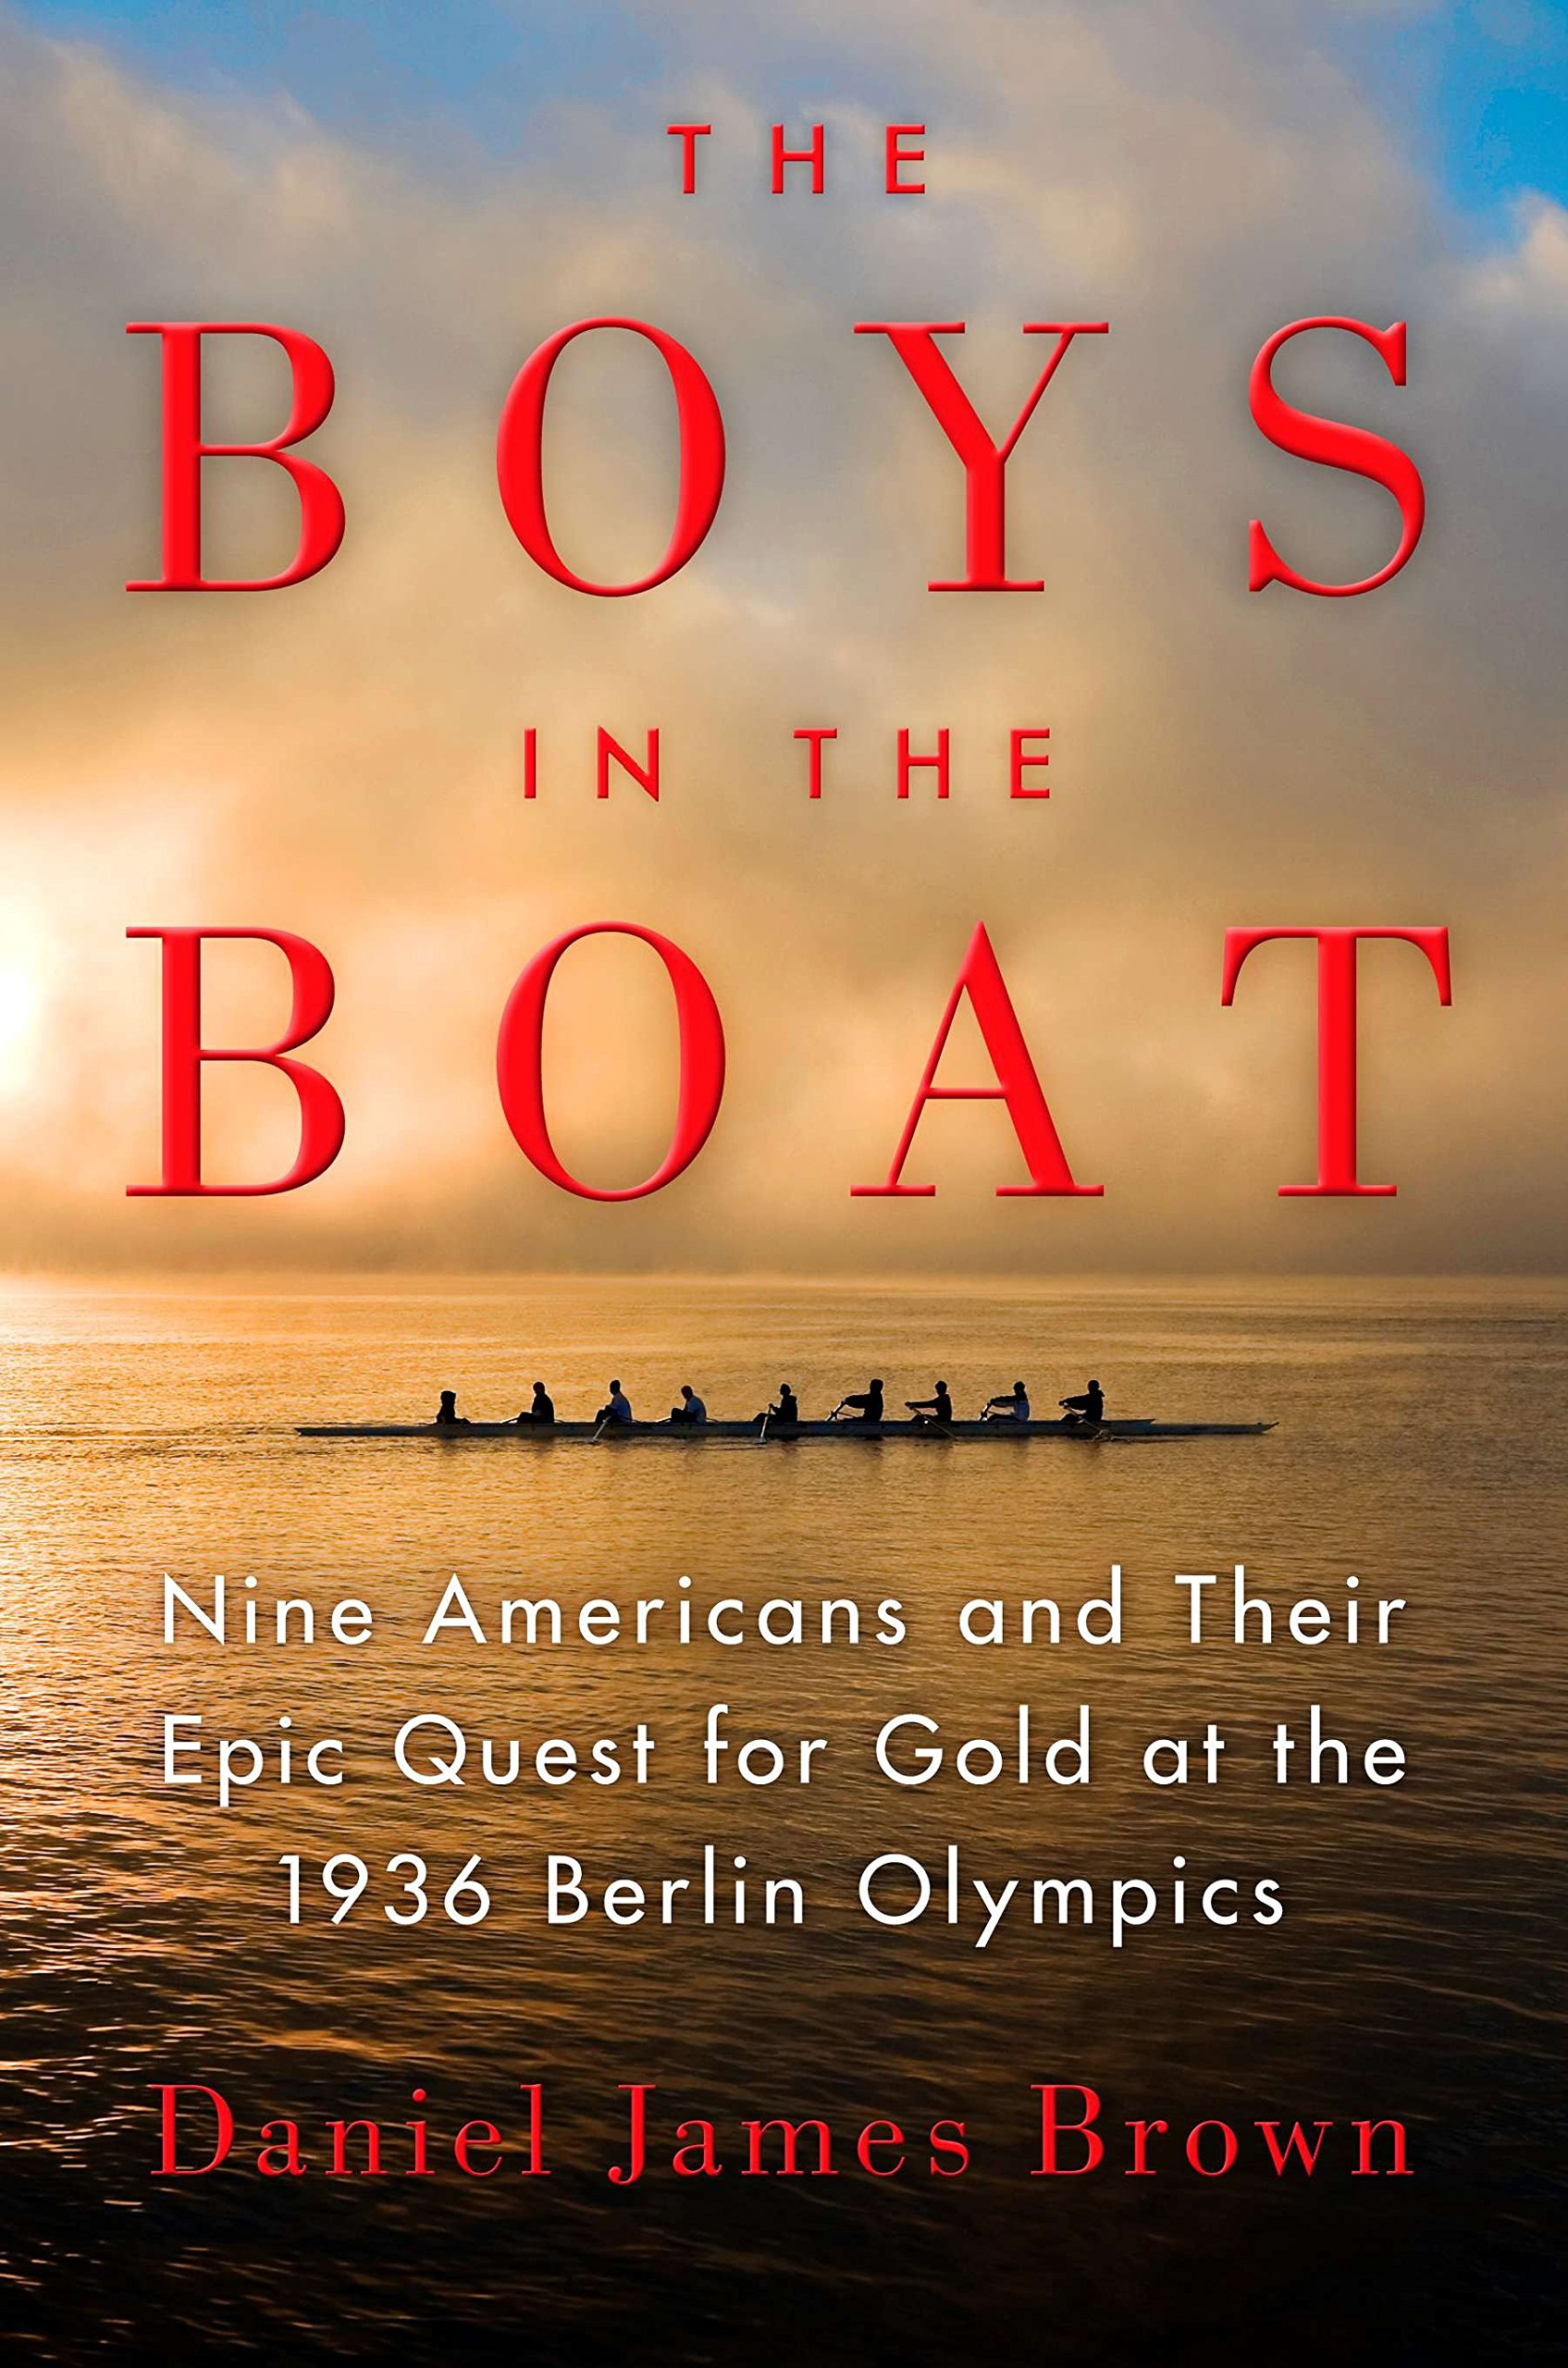 The Boys in the Boat: Nine Americans and Their Epic Quest for Gold at the  1936 Berlin Olympics: Brown, Daniel James: 9780670025817: Amazon.com: Books